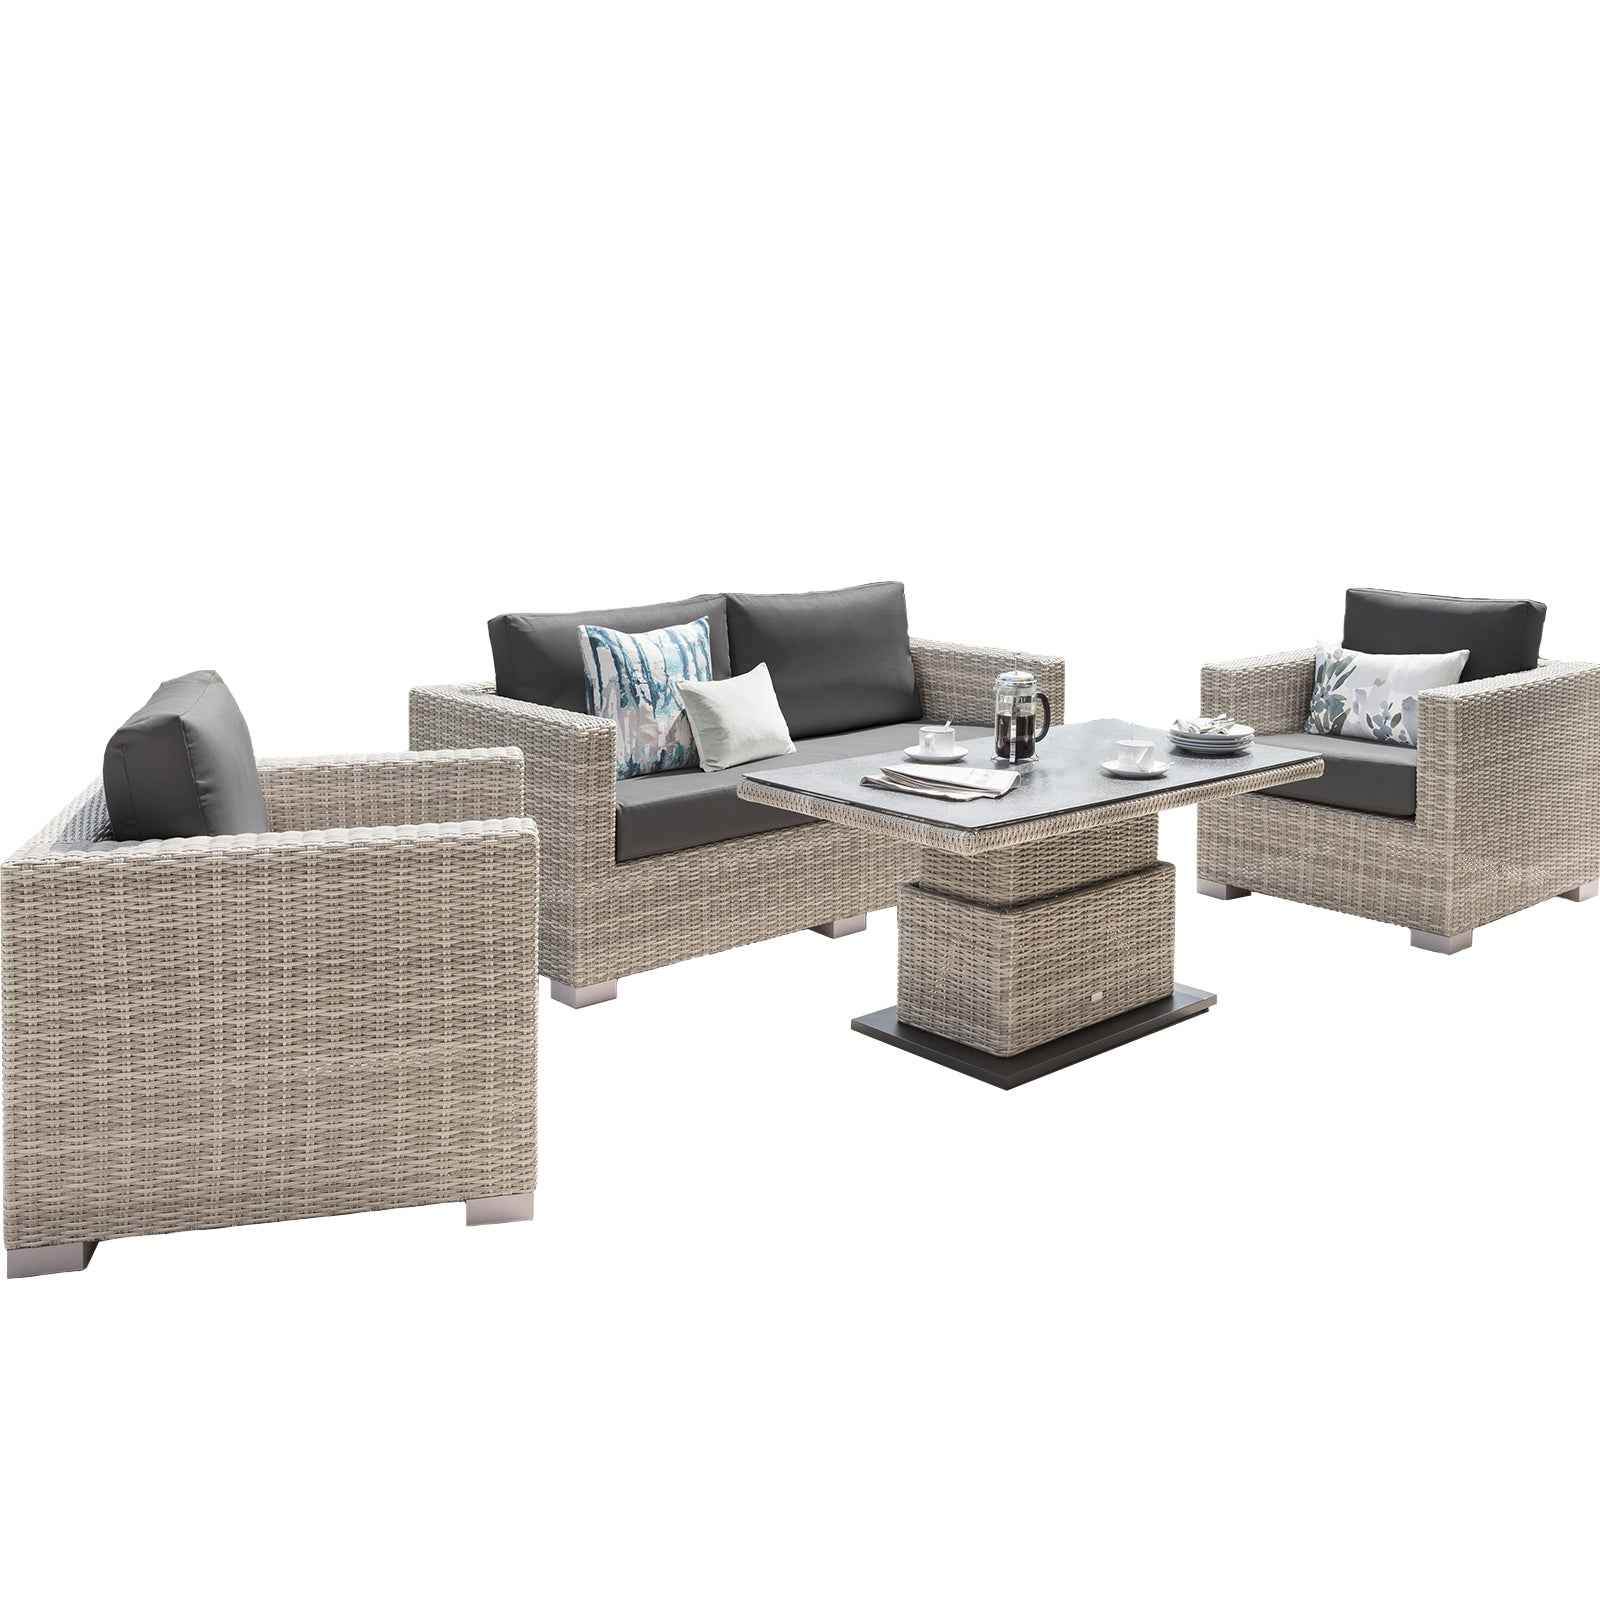 Aya Sofa Set with Adjustable Table